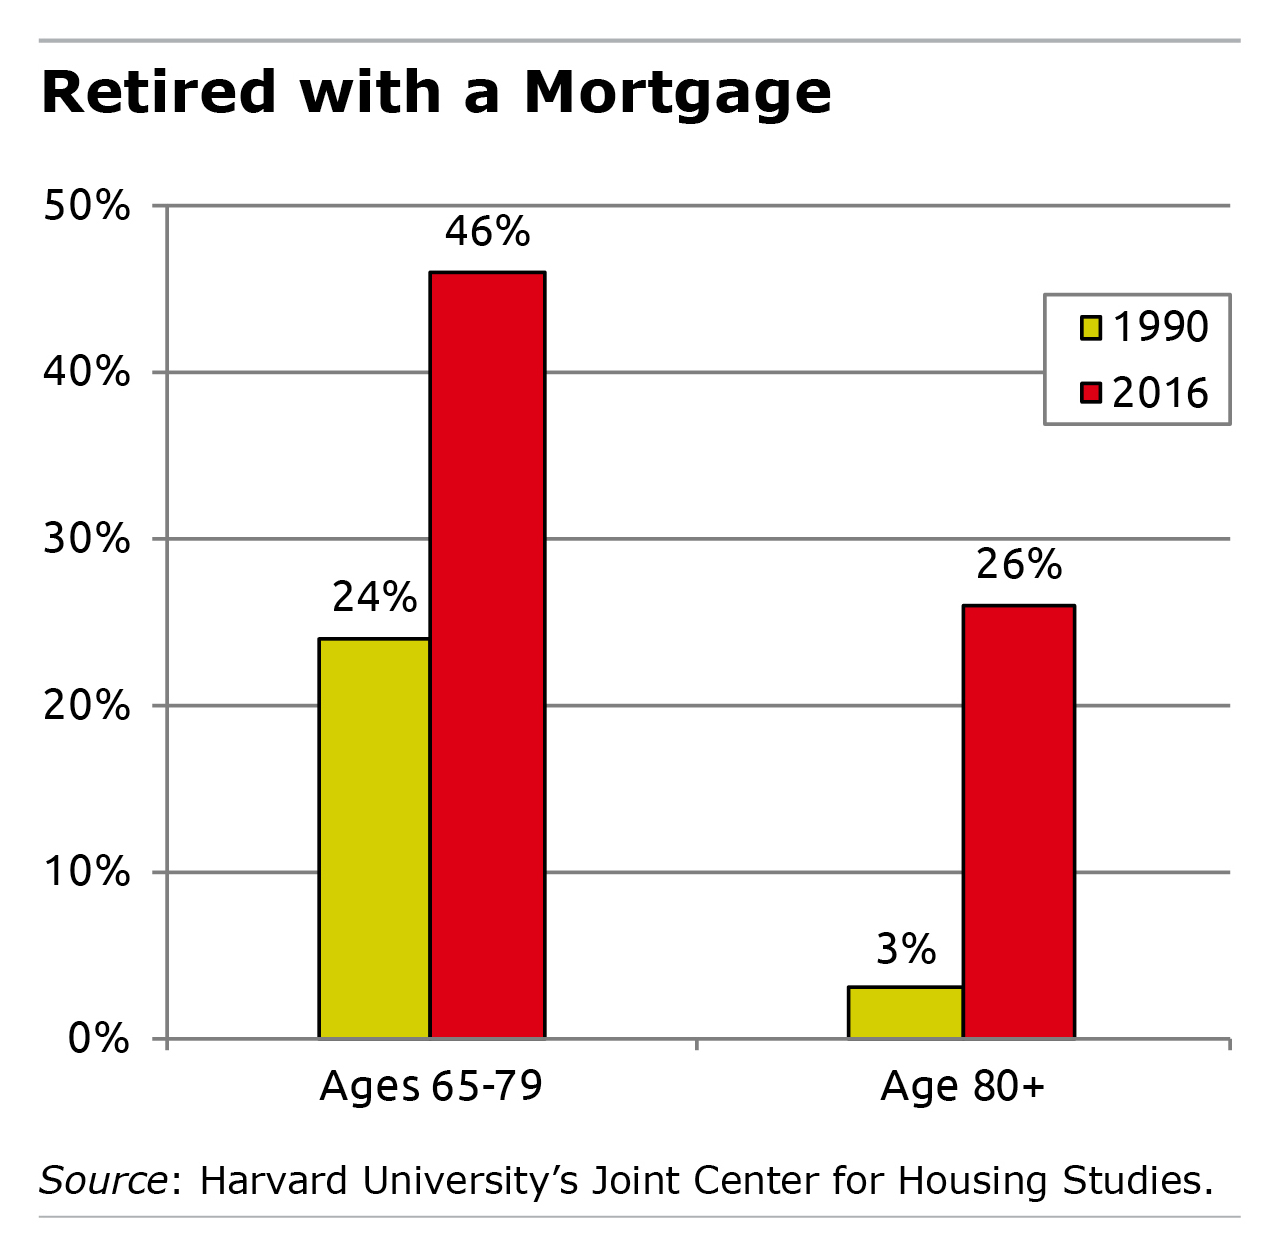 Bar graph showing the number of retirees with mortgages